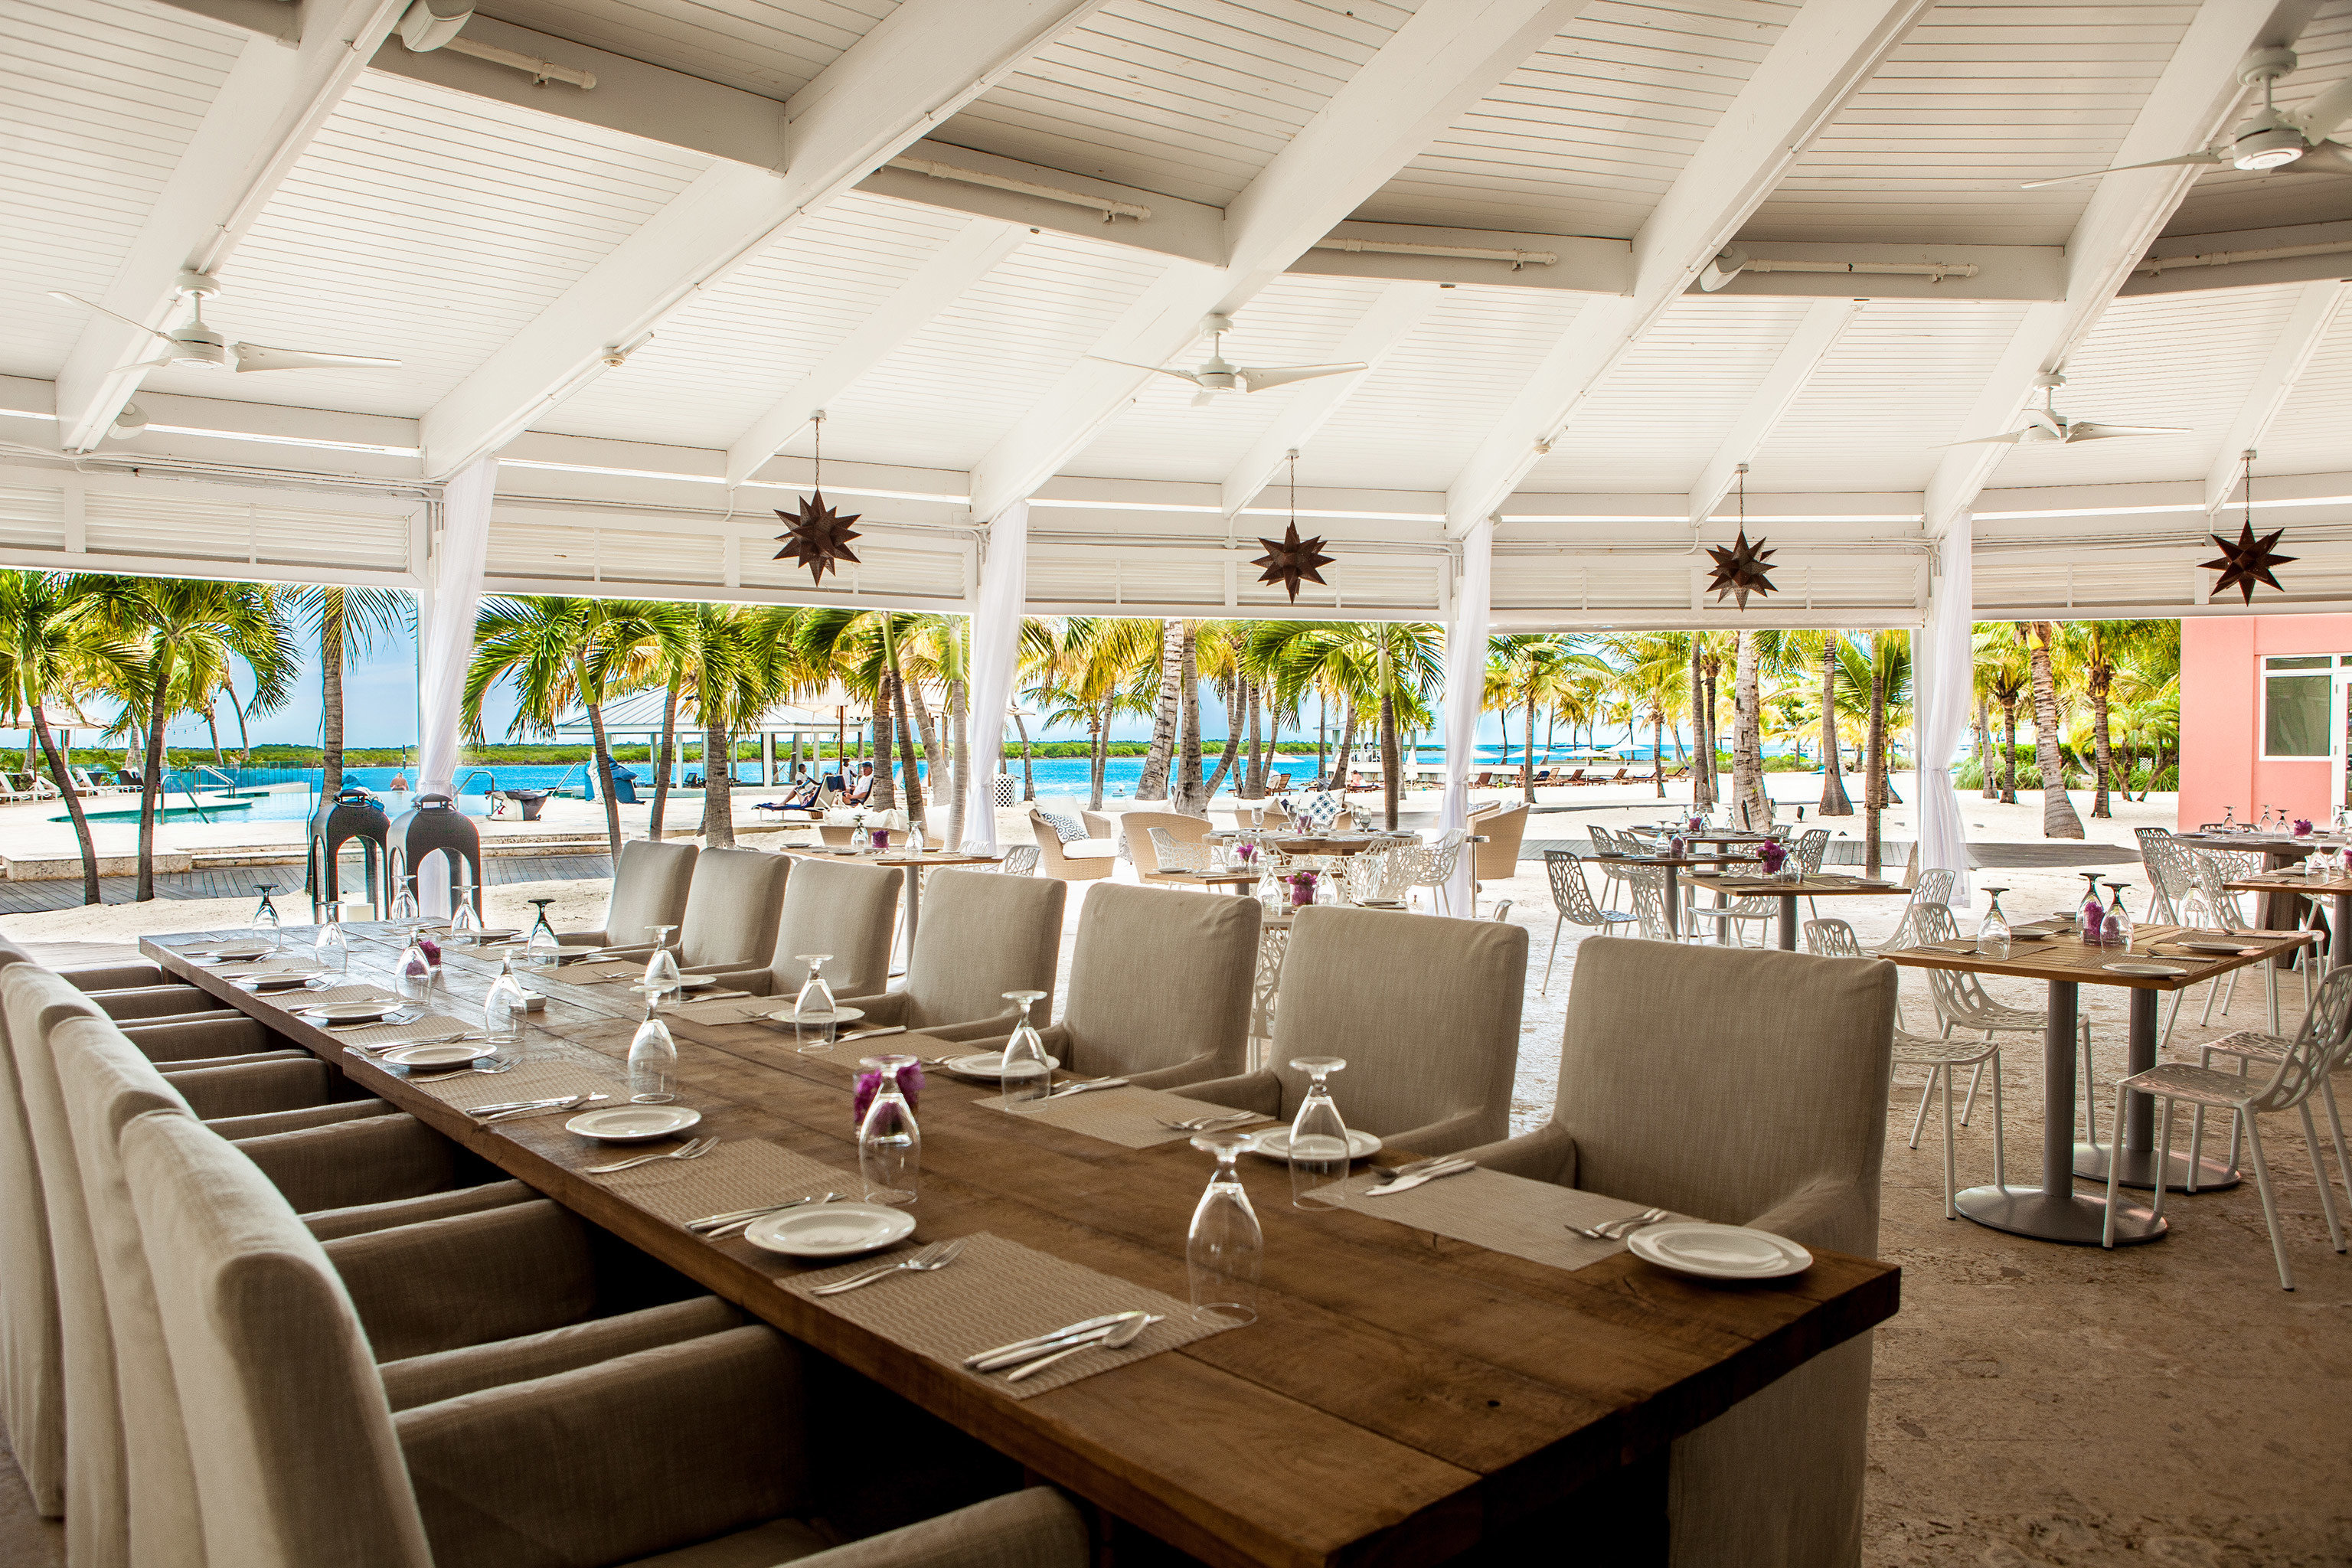 Beachfront Drink Eat Grounds Play Resort function hall restaurant convention center conference hall banquet ballroom